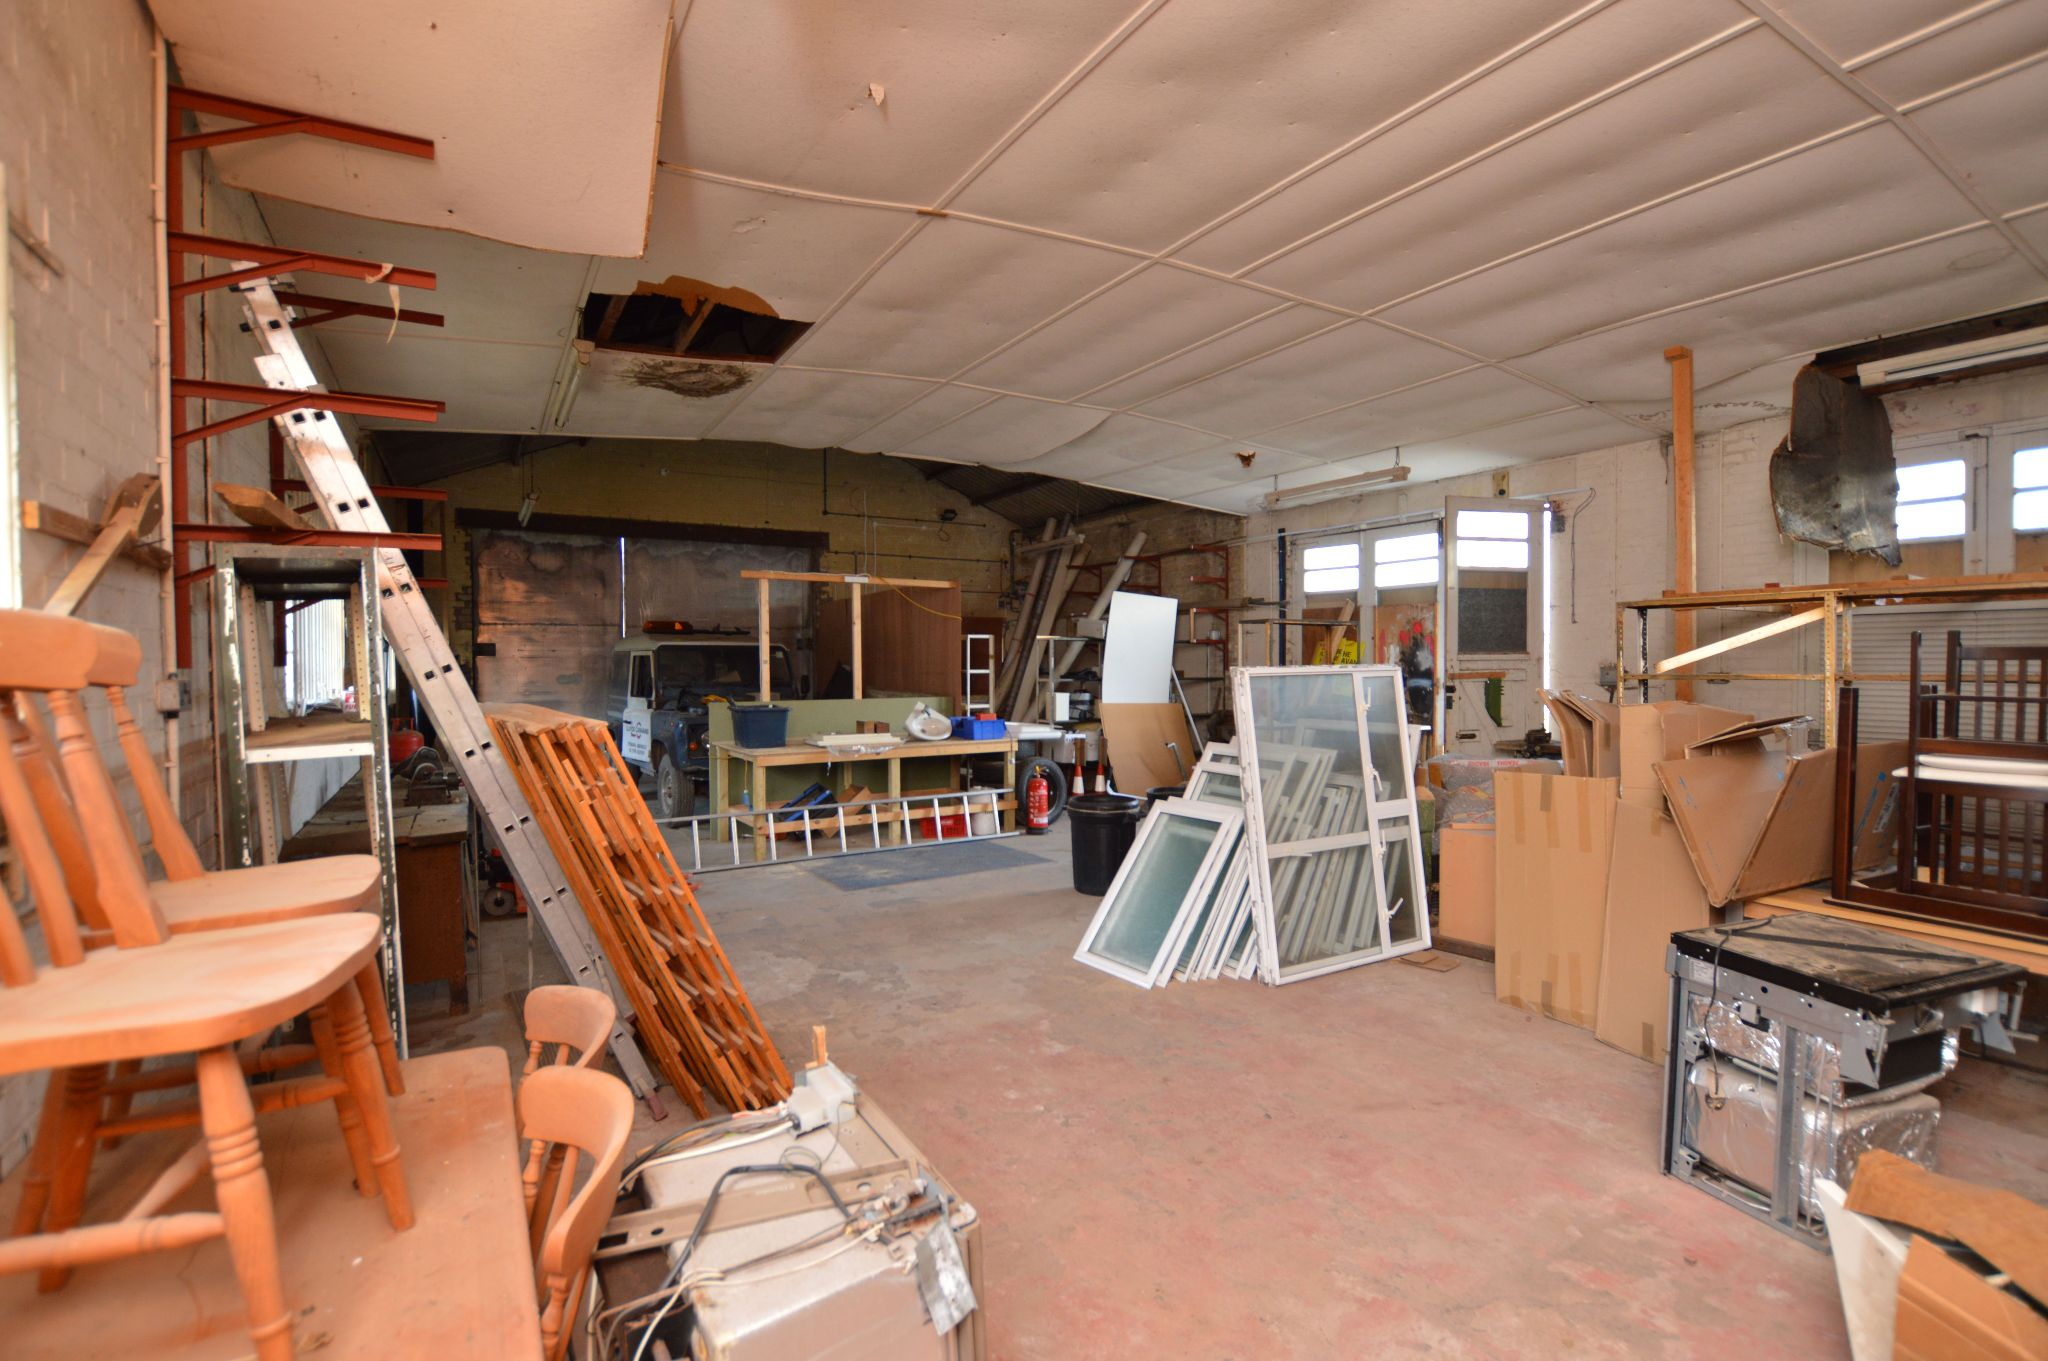 Land For Sale in Holywell - Work Shop